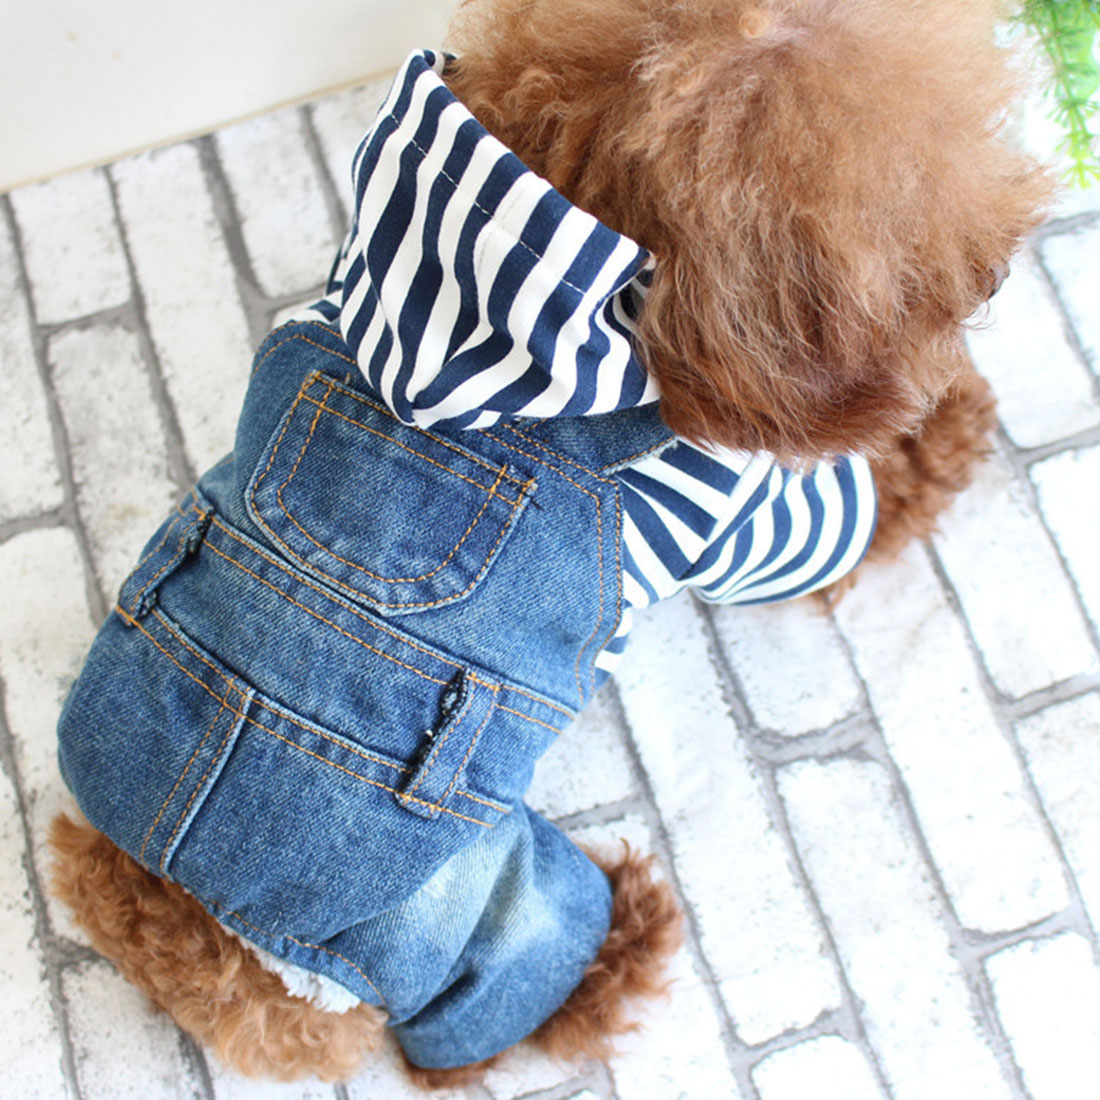 Denim Stripe Pet Dog Jumpsuits Puppy Cat Hoodie Jean Coat Four Feet Clothes For Small Dogs Teddy Yorkies Sweatshirt Dog ClothDenim Stripe Pet Dog Jumpsuits Puppy Cat Hoodie Jean Coat Four Feet Clothes For Small Dogs Teddy Yorkies Sweatshirt Dog Cloth